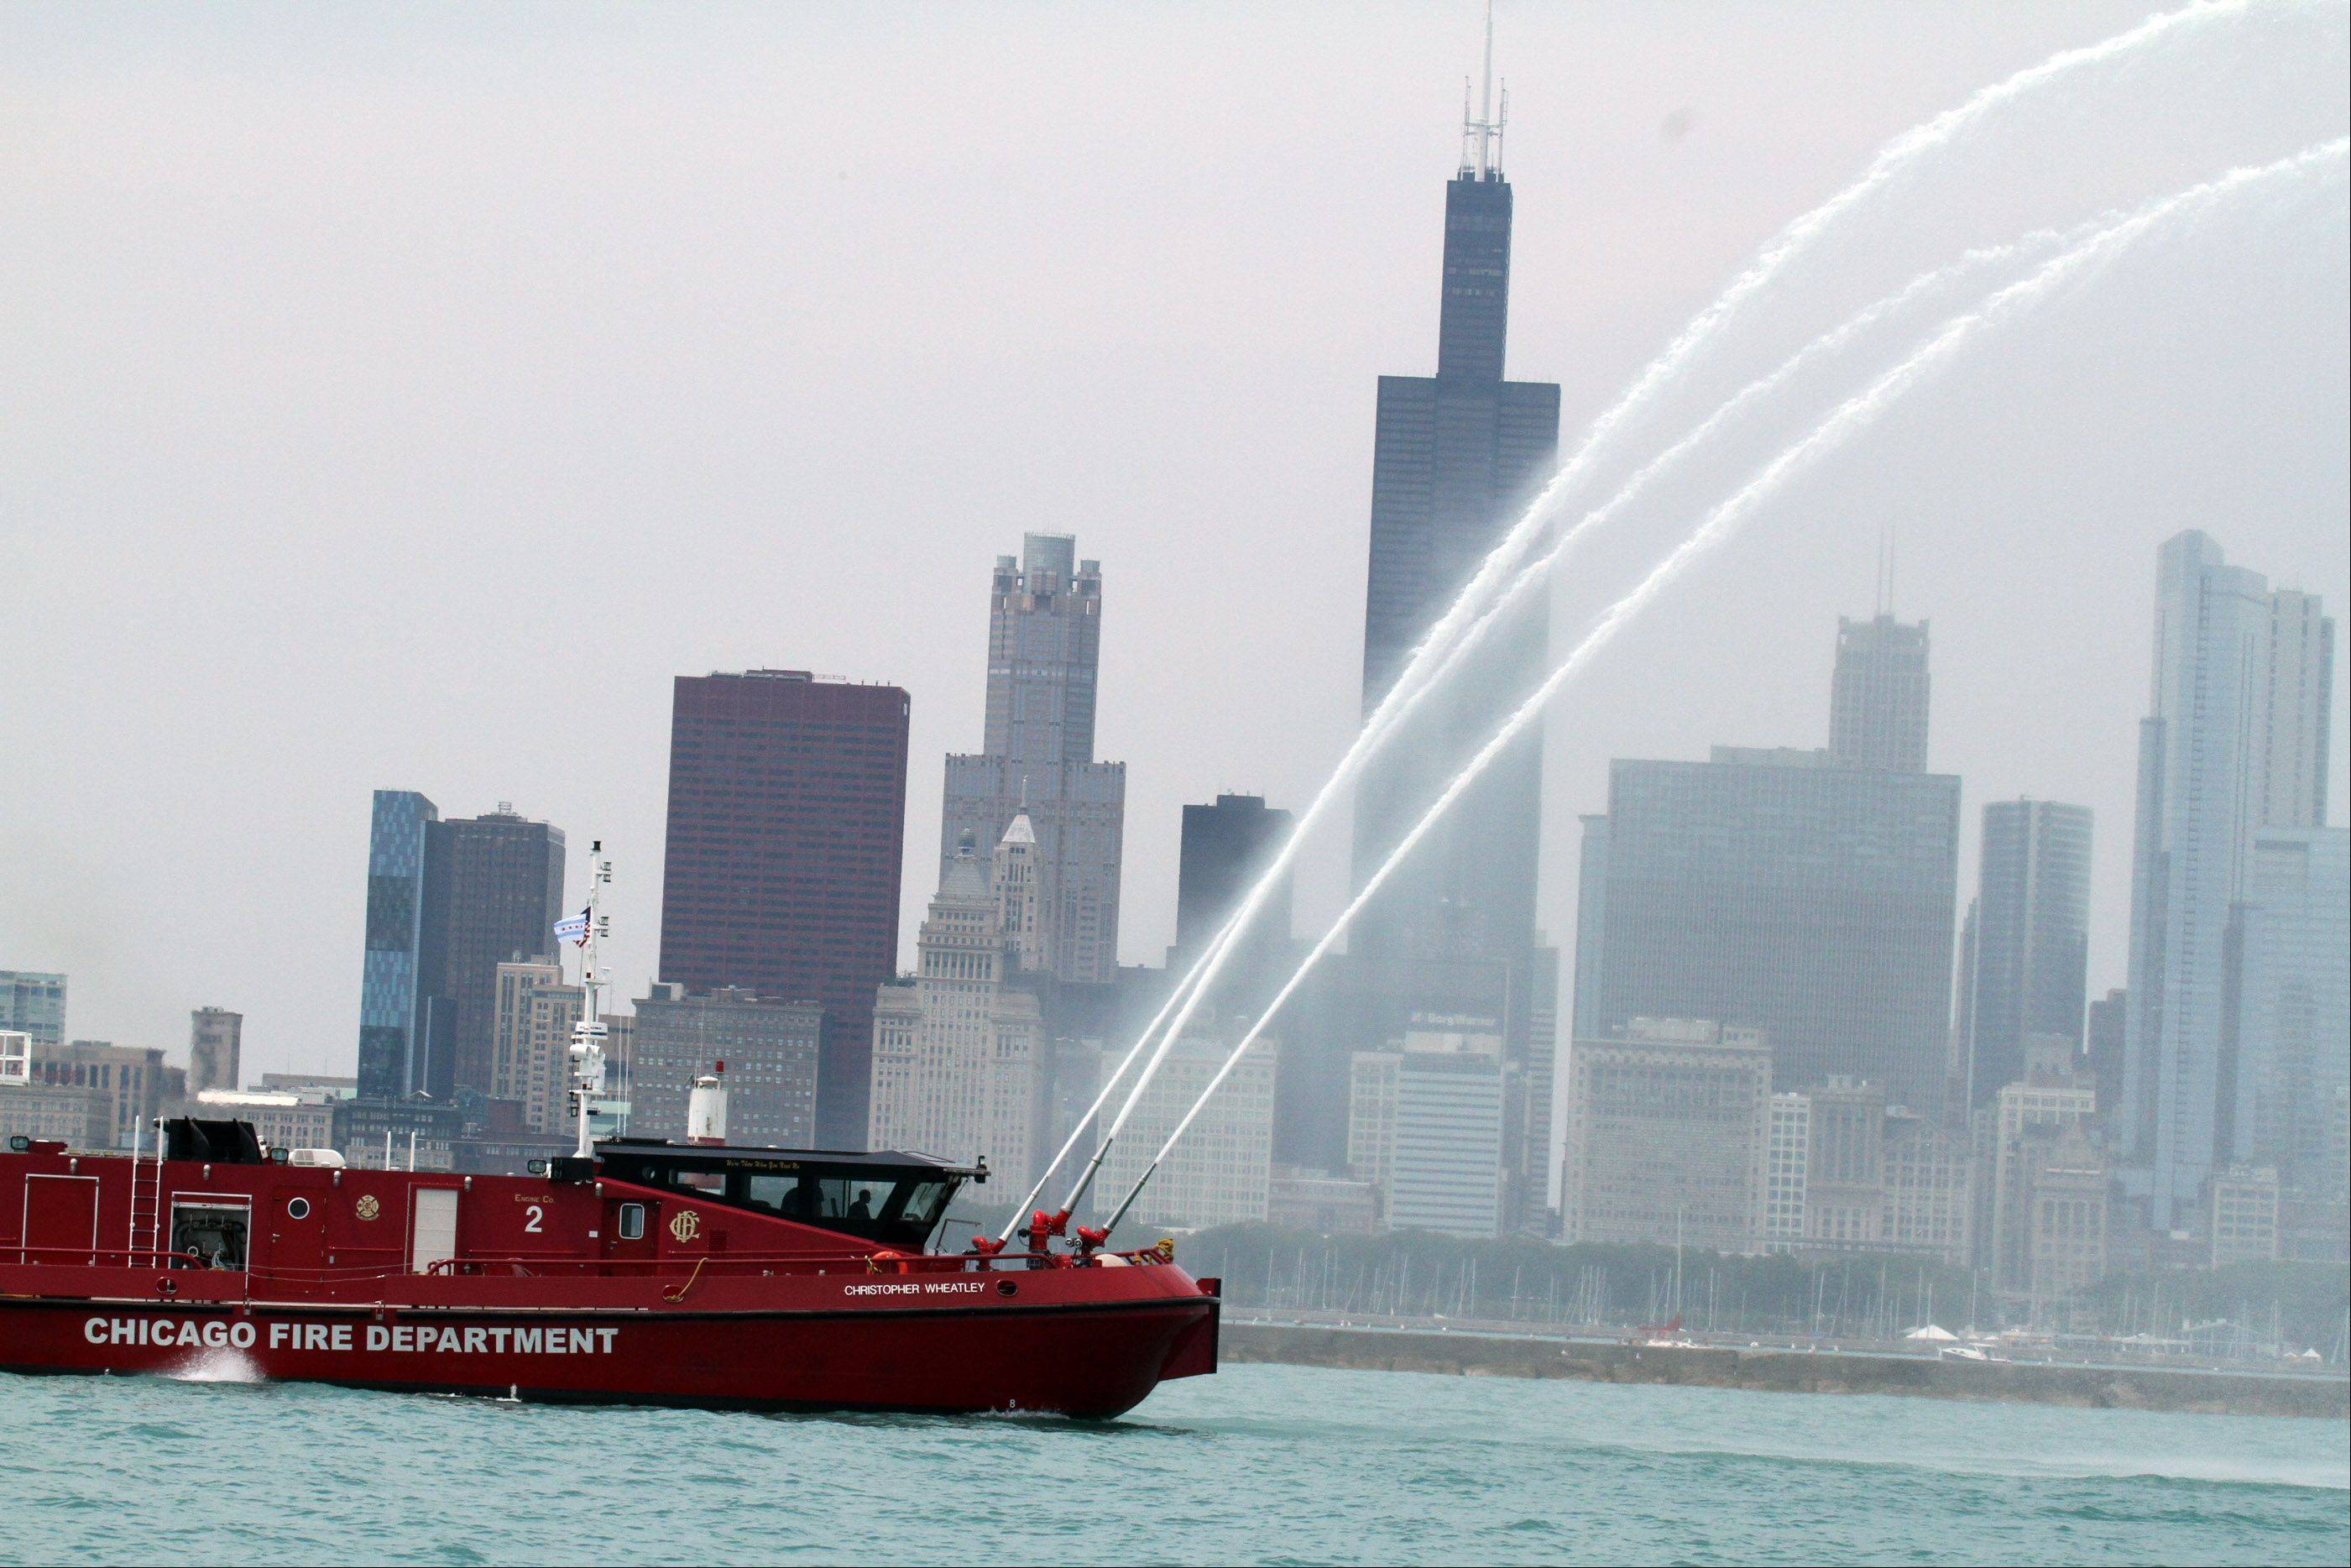 A Chicago Fire Department boat was on on hand spraying water across the Chicago skyline before the start of the 104th Chicago Yacht Club Race to Mackinac on Lake Michigan of Chicago on Saturday, July 21.